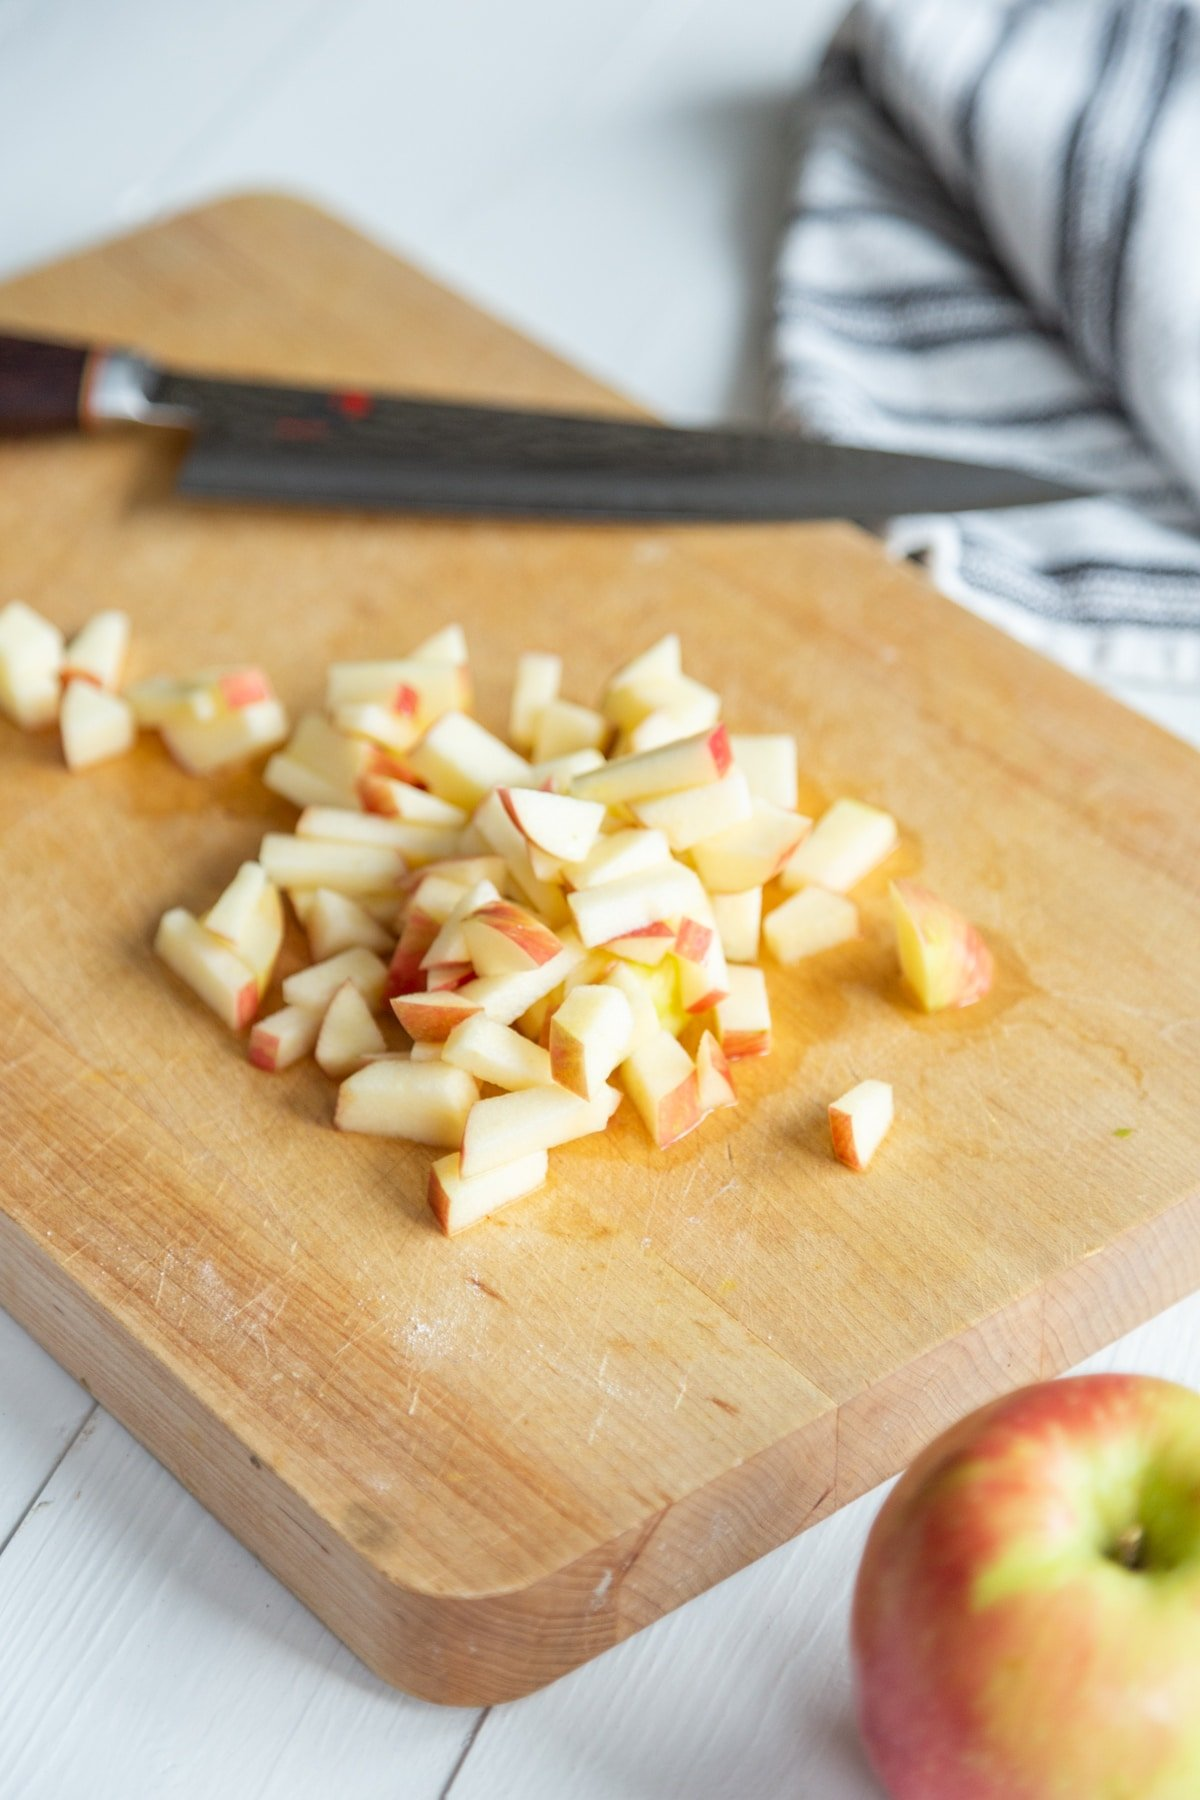 A wood cutting board with a knife and chopped apples and a whole red apple and a towel next to the board.